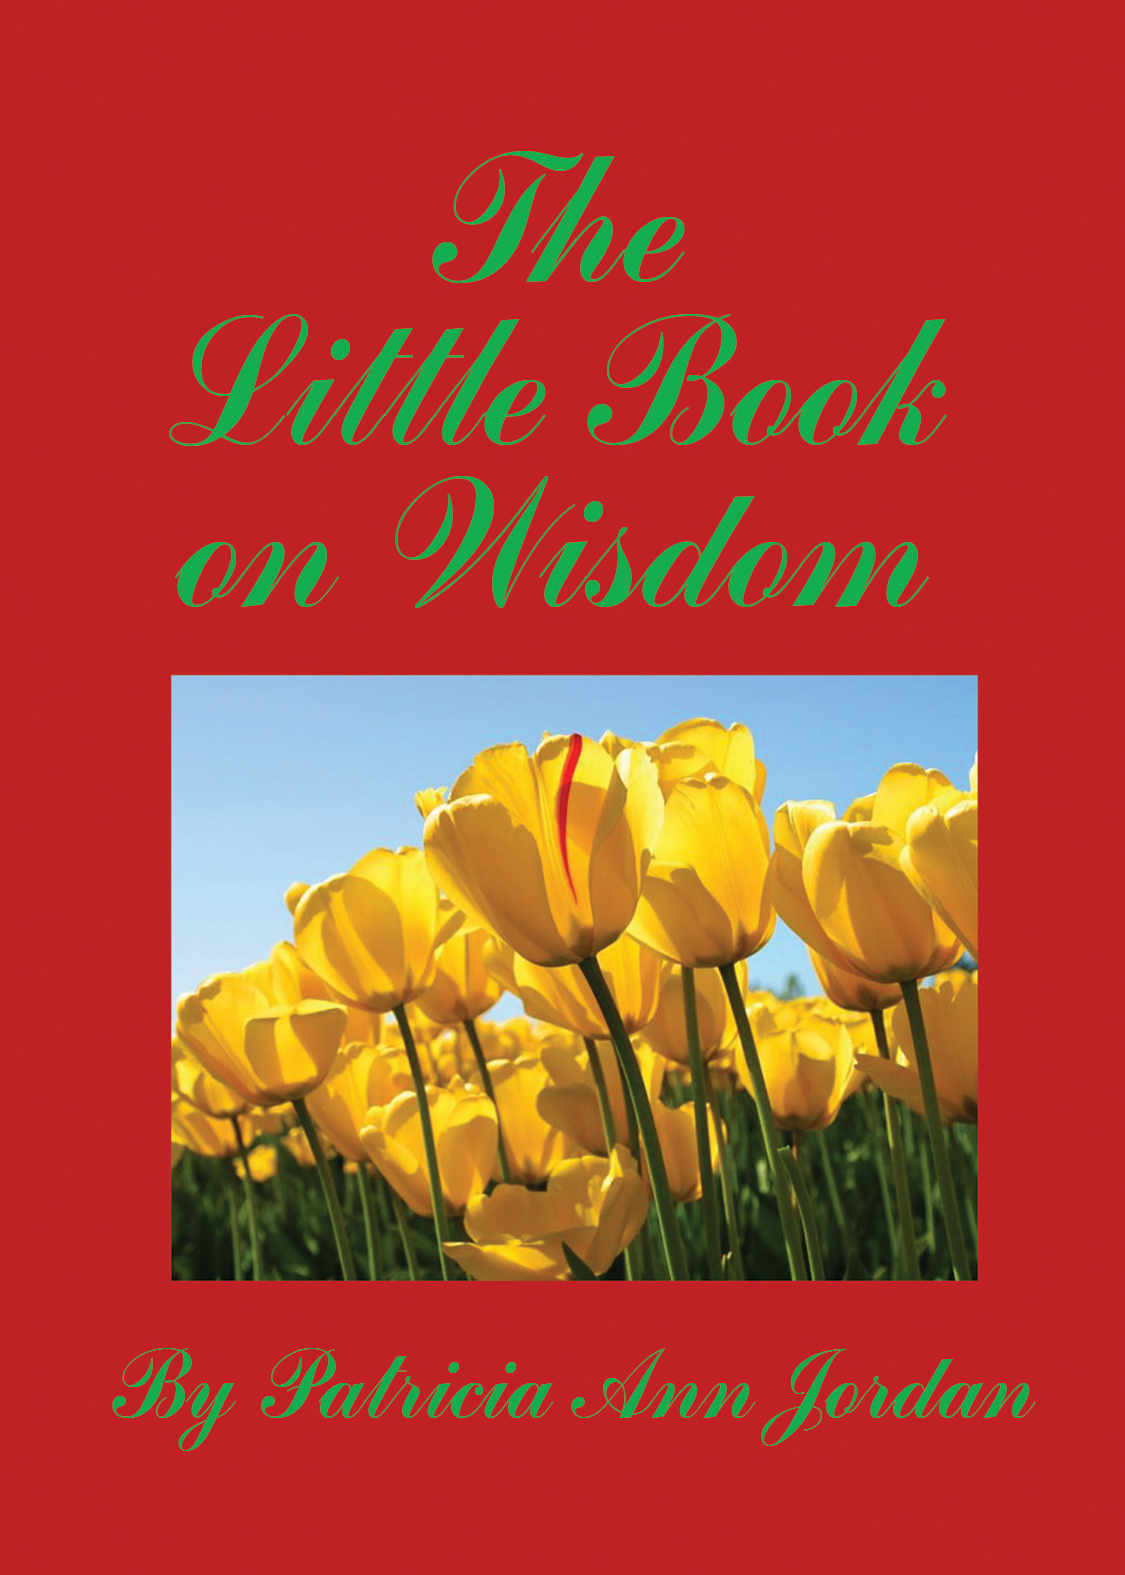 The Little Book on Wisdom